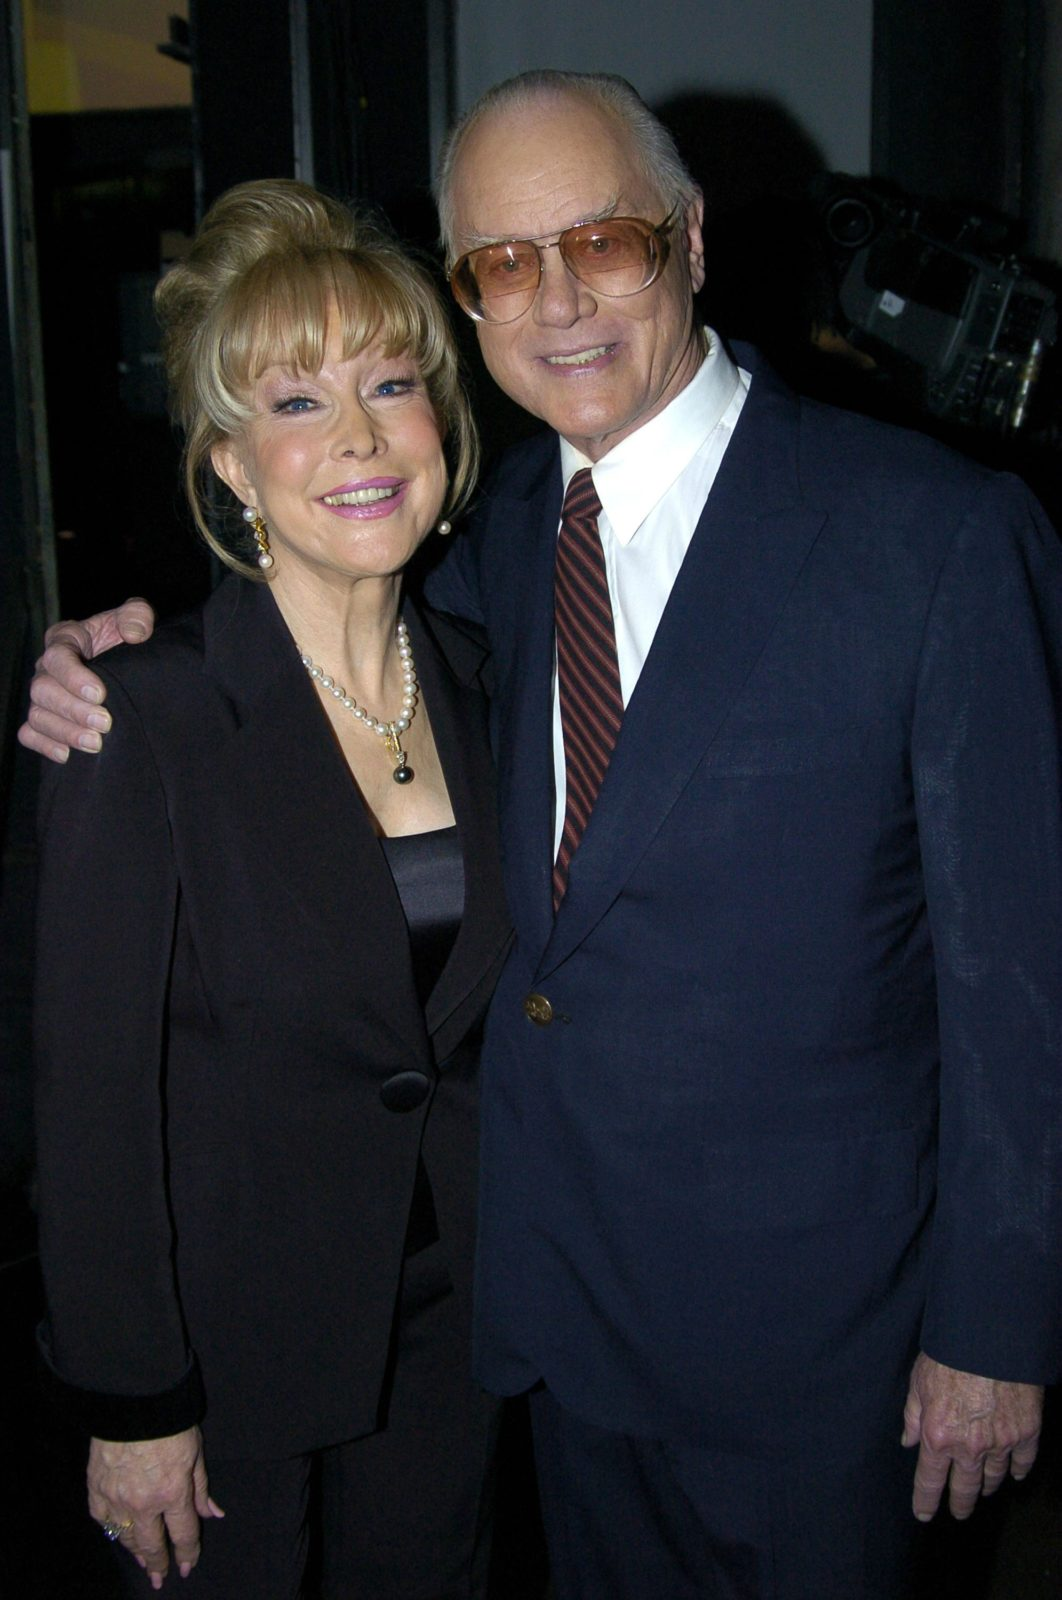 Barbara Eden and Larry Hagman in 2004. Source: Getty.